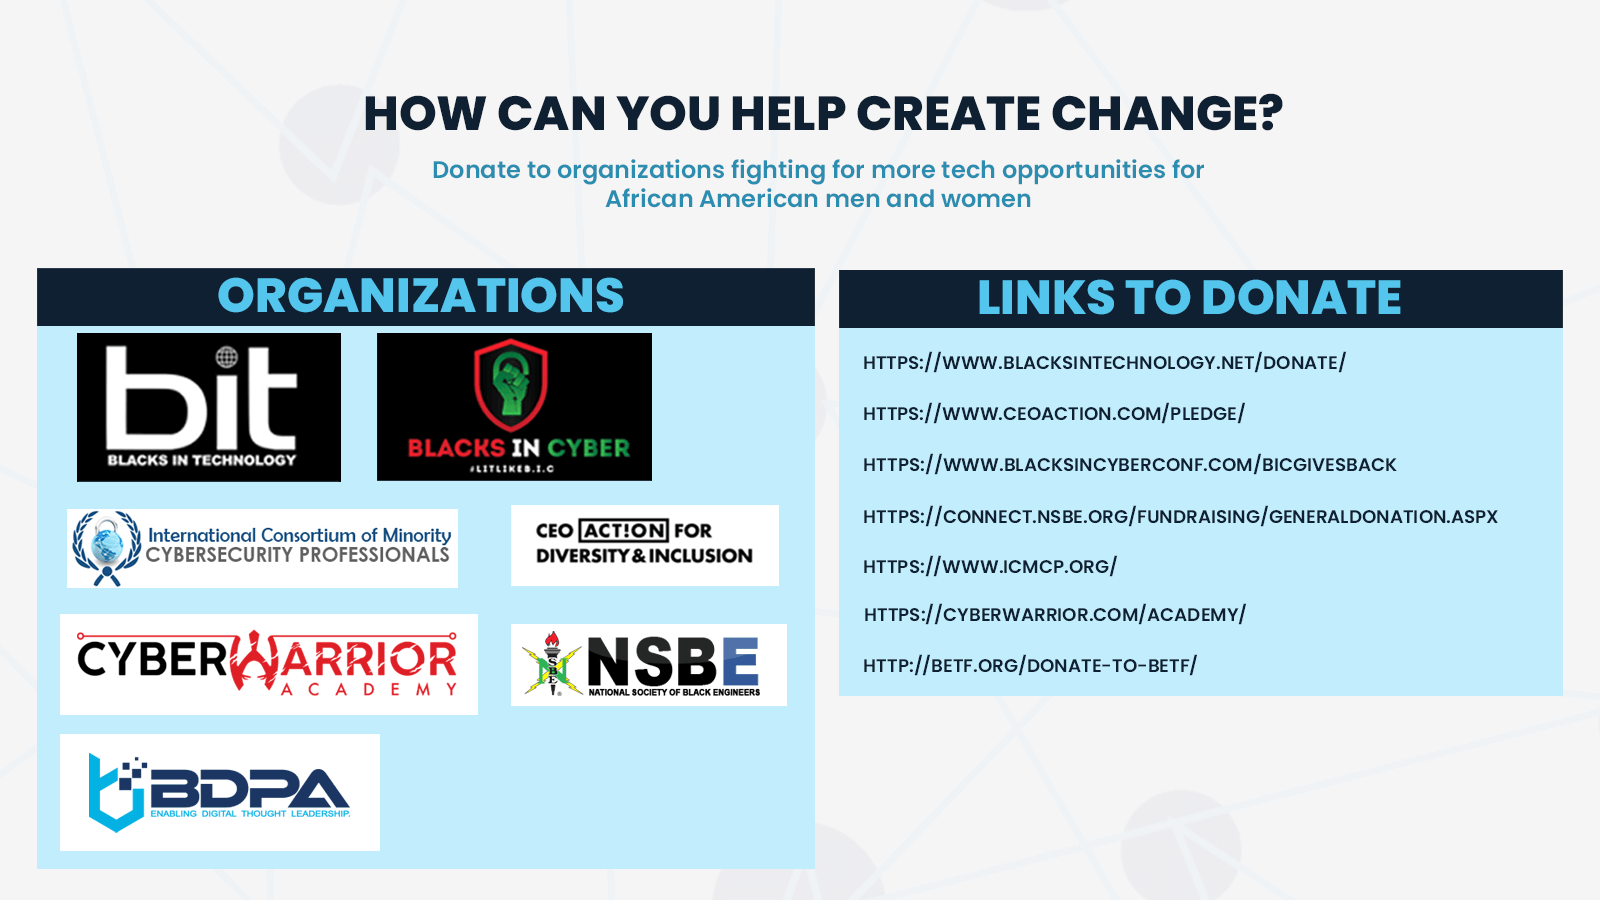 How to Donate or Get Involved in Professional Organizations: